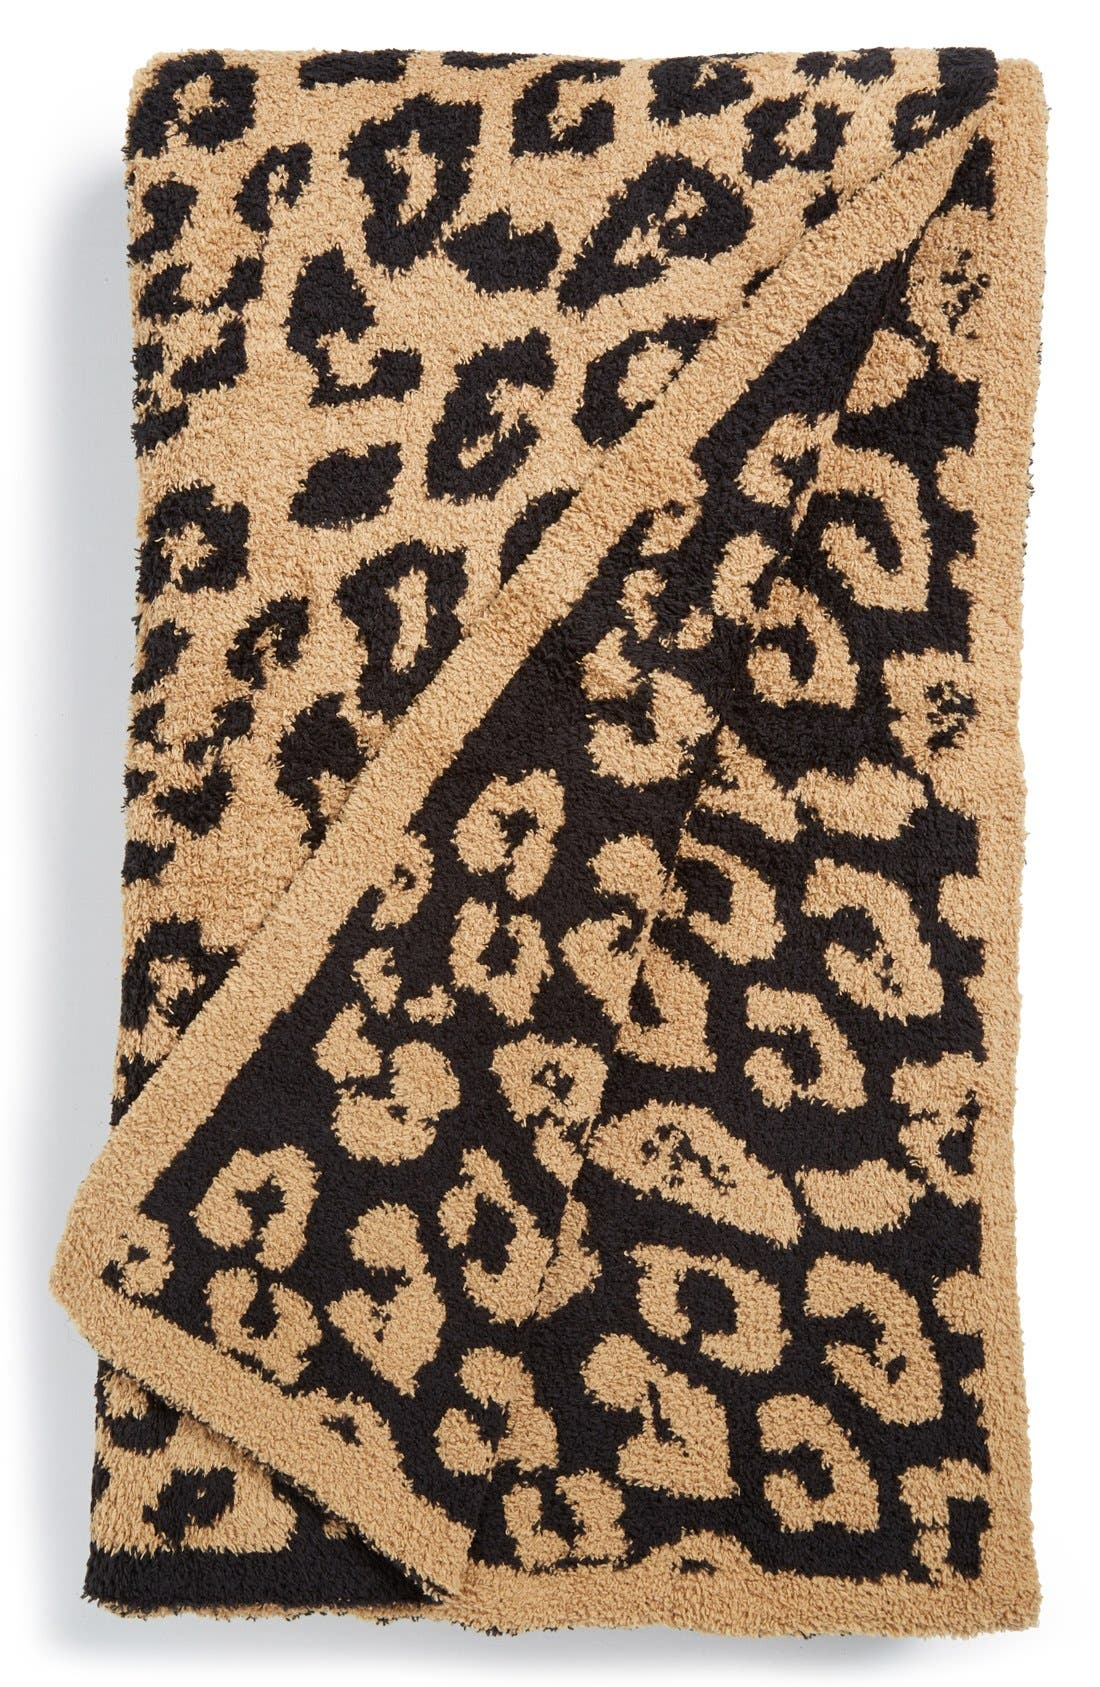 CozyChic 'In the Wild' Throw Blanket,                             Main thumbnail 1, color,                             Midnight/ Camel